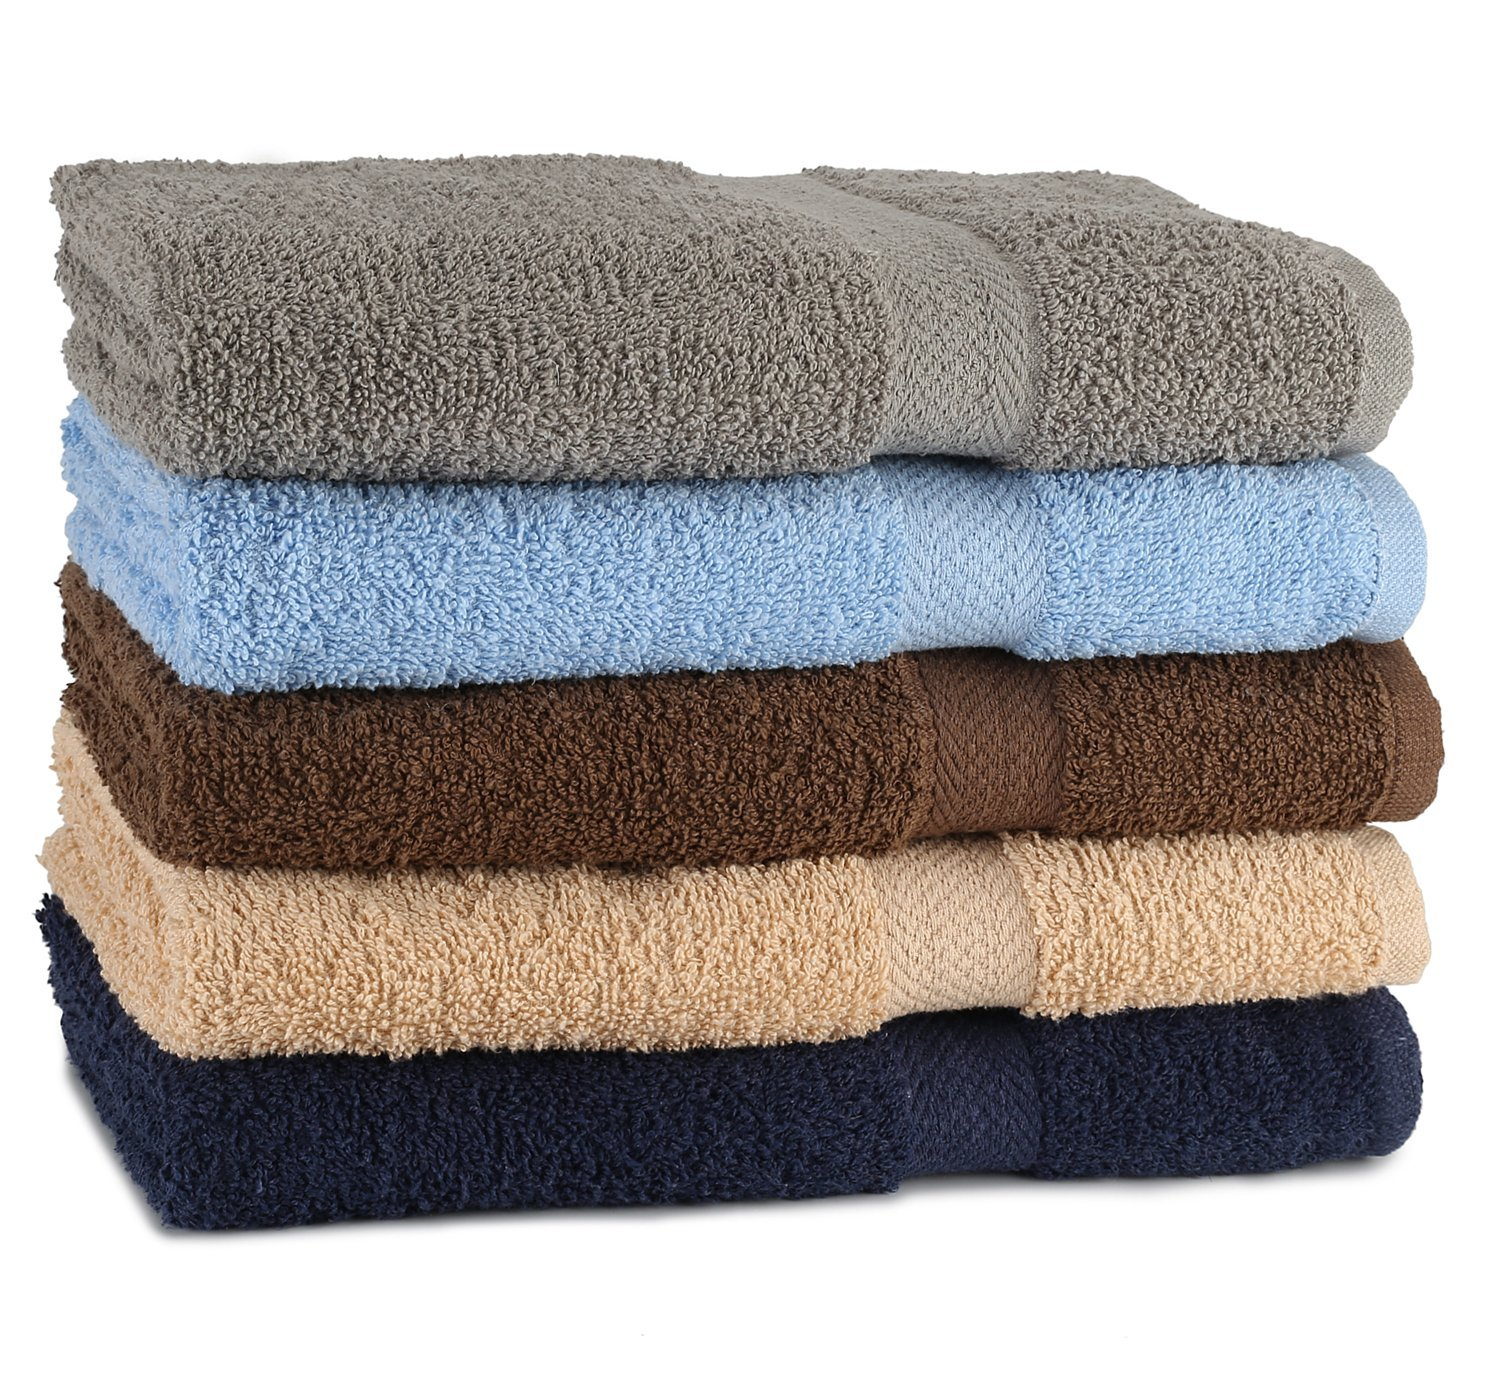 TowelFirst 5-Pack Extra-Absorbent Bath Towel Set - Large, 27